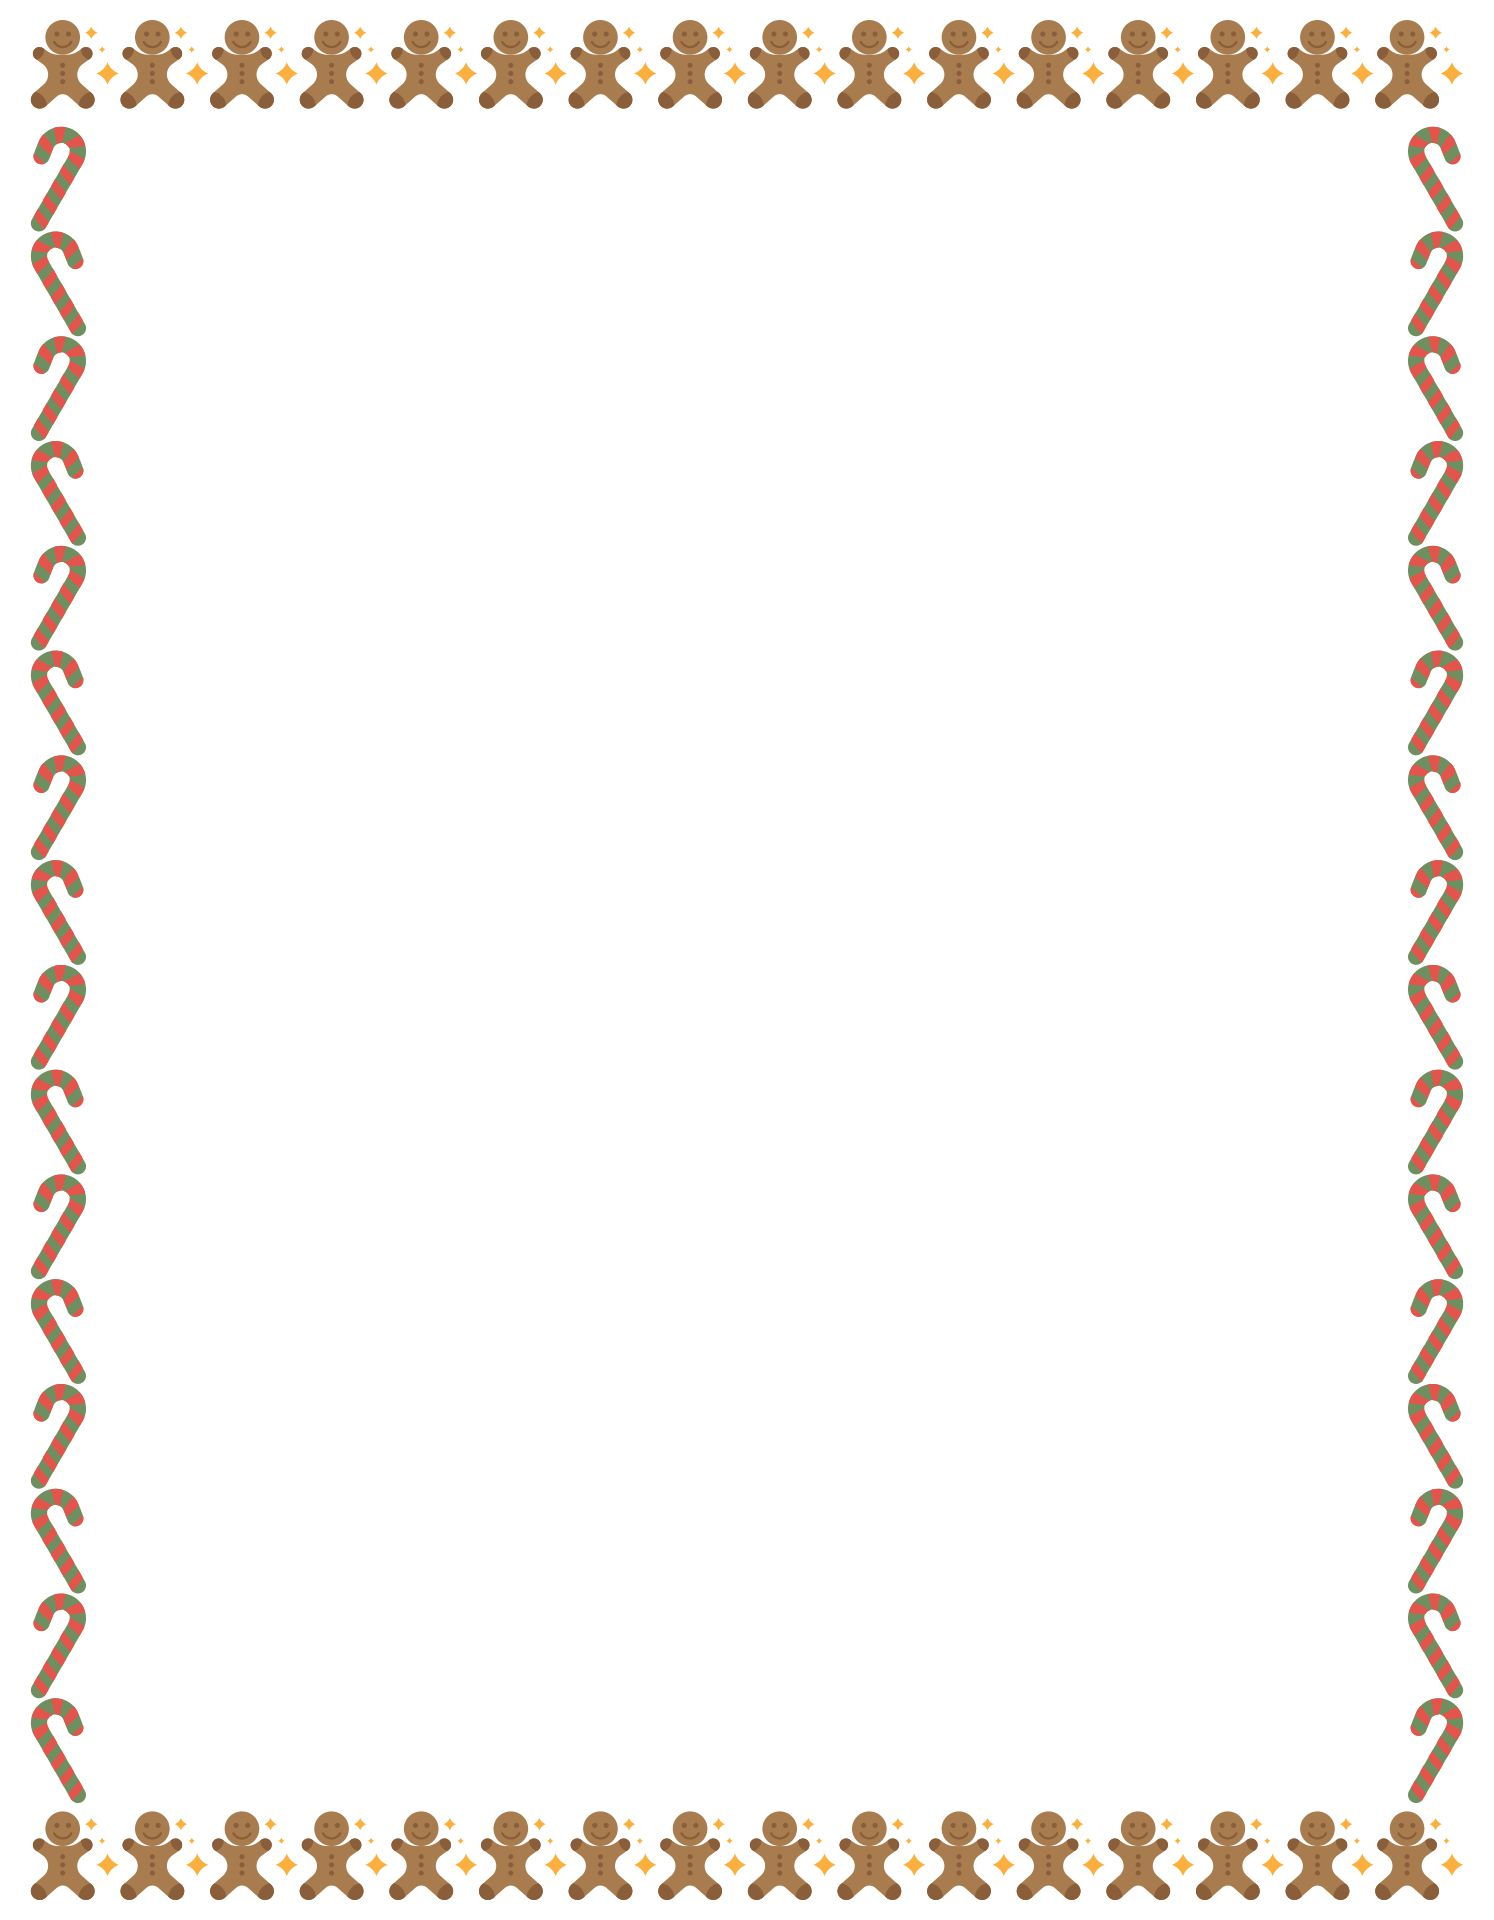 7 Images of Free Printable Christmas Border Designs